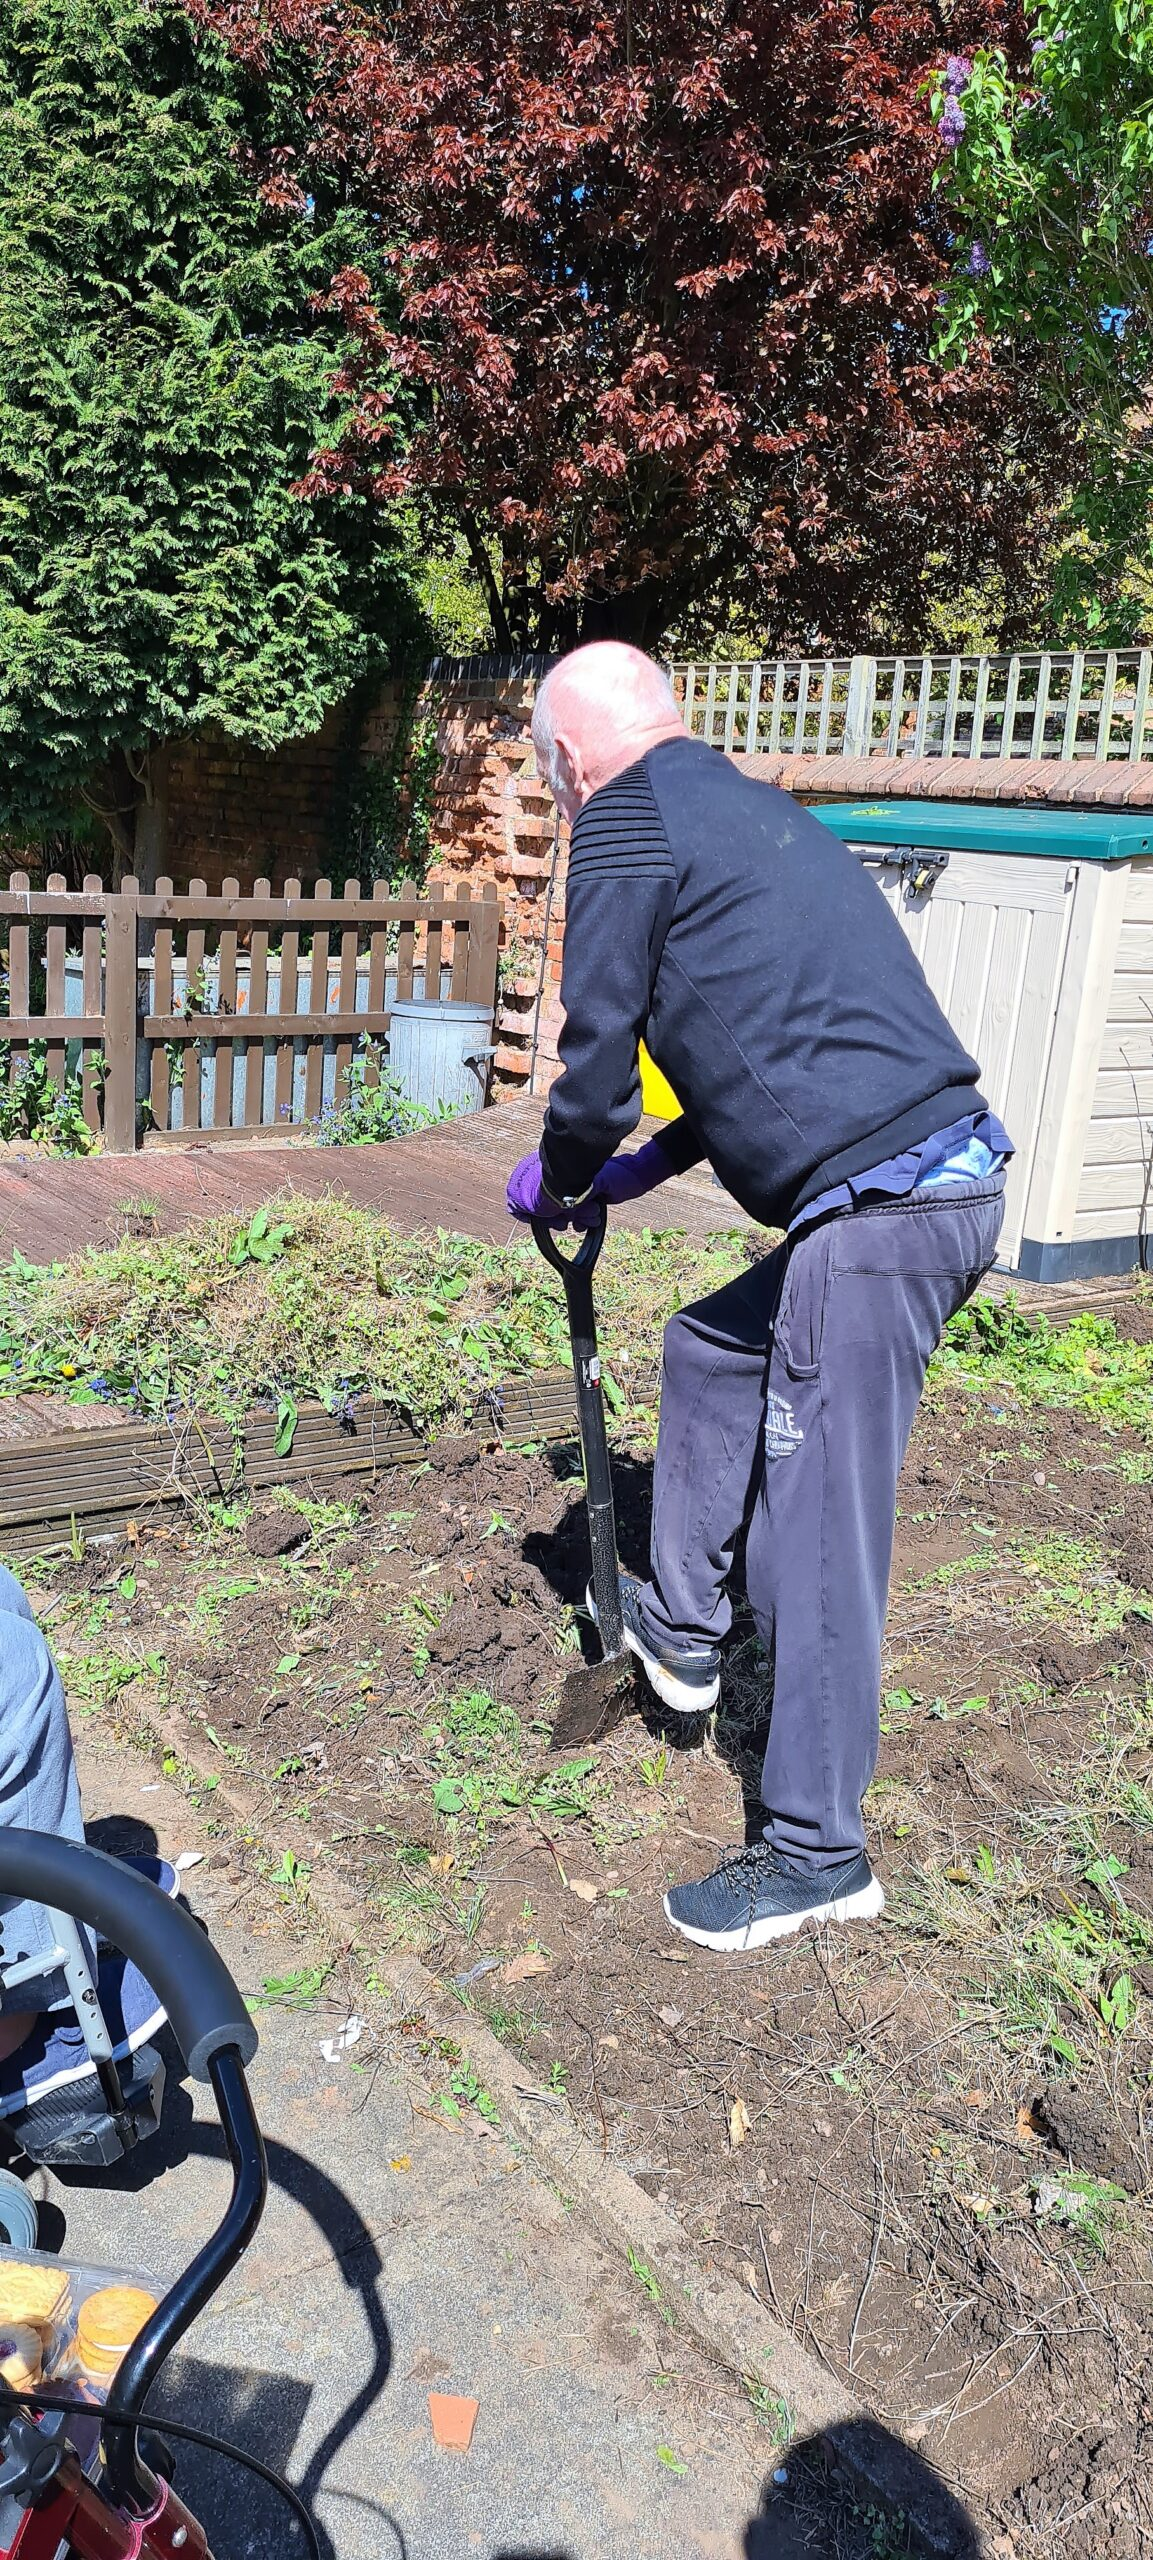 Gardening is good for mental wellbeing